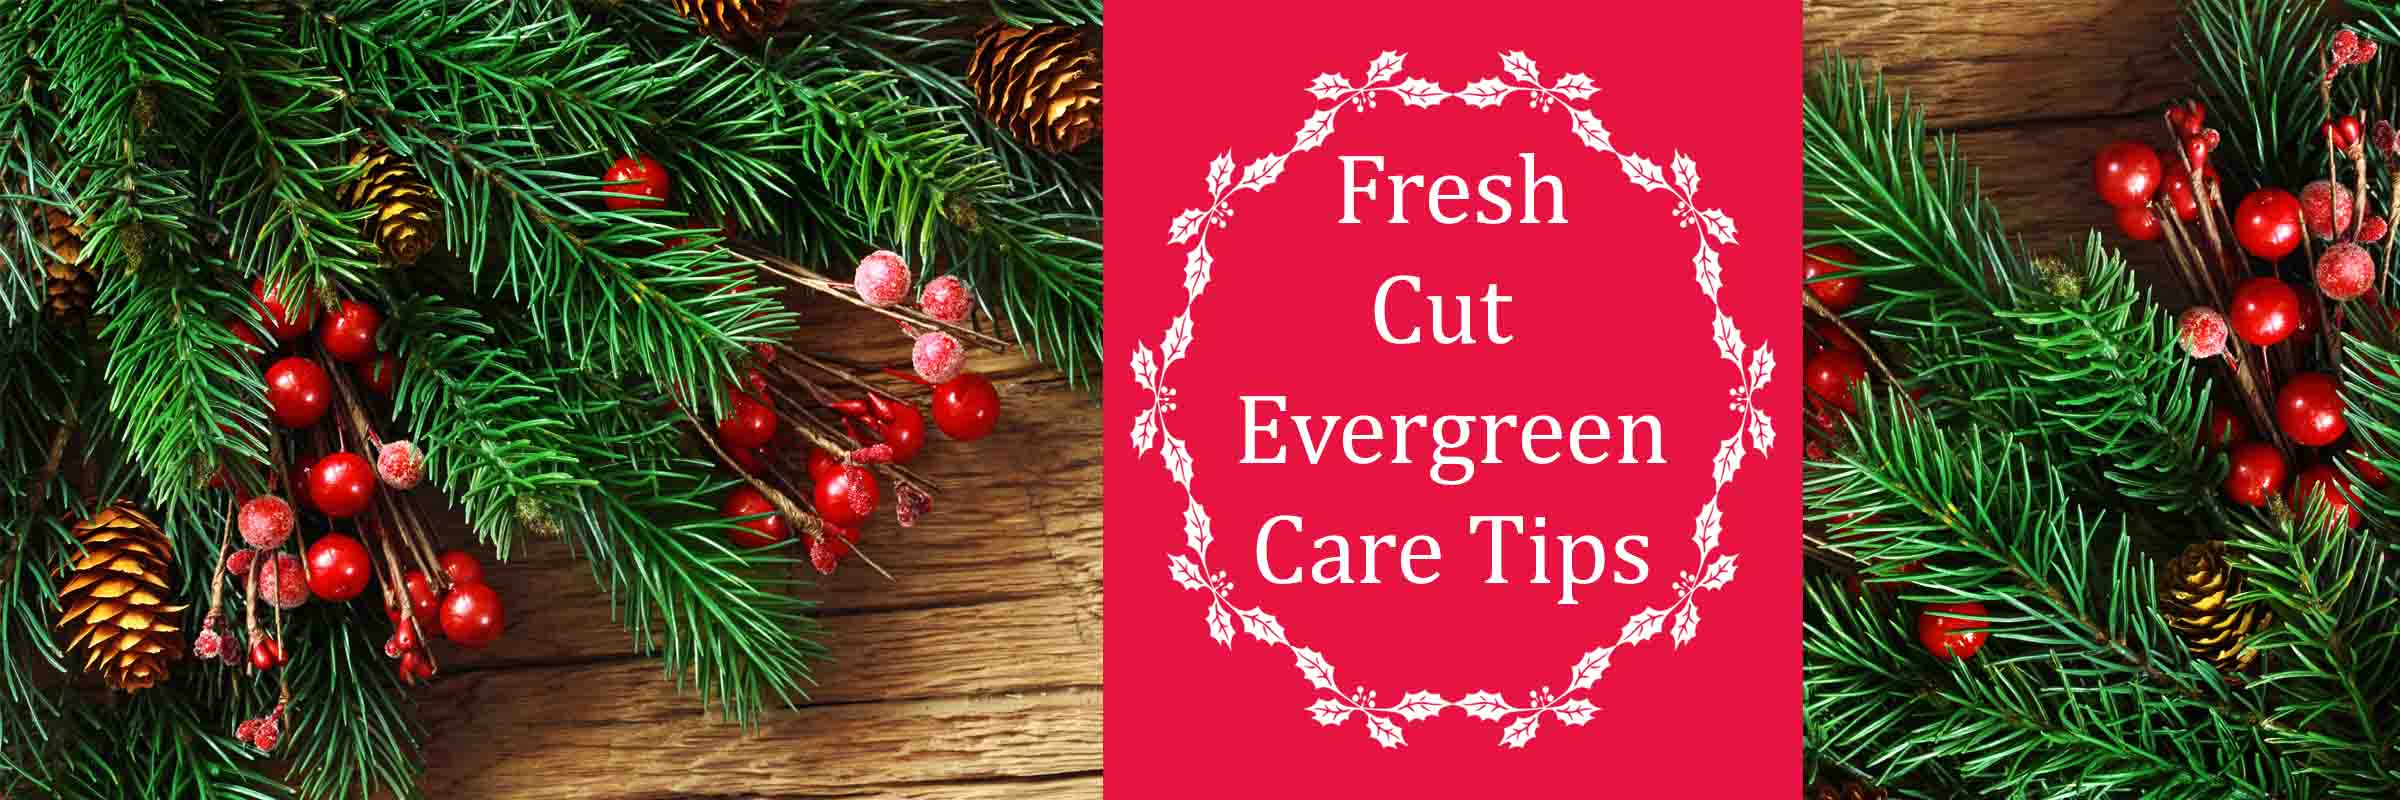 Fresh Cut Evergreens Care Tips